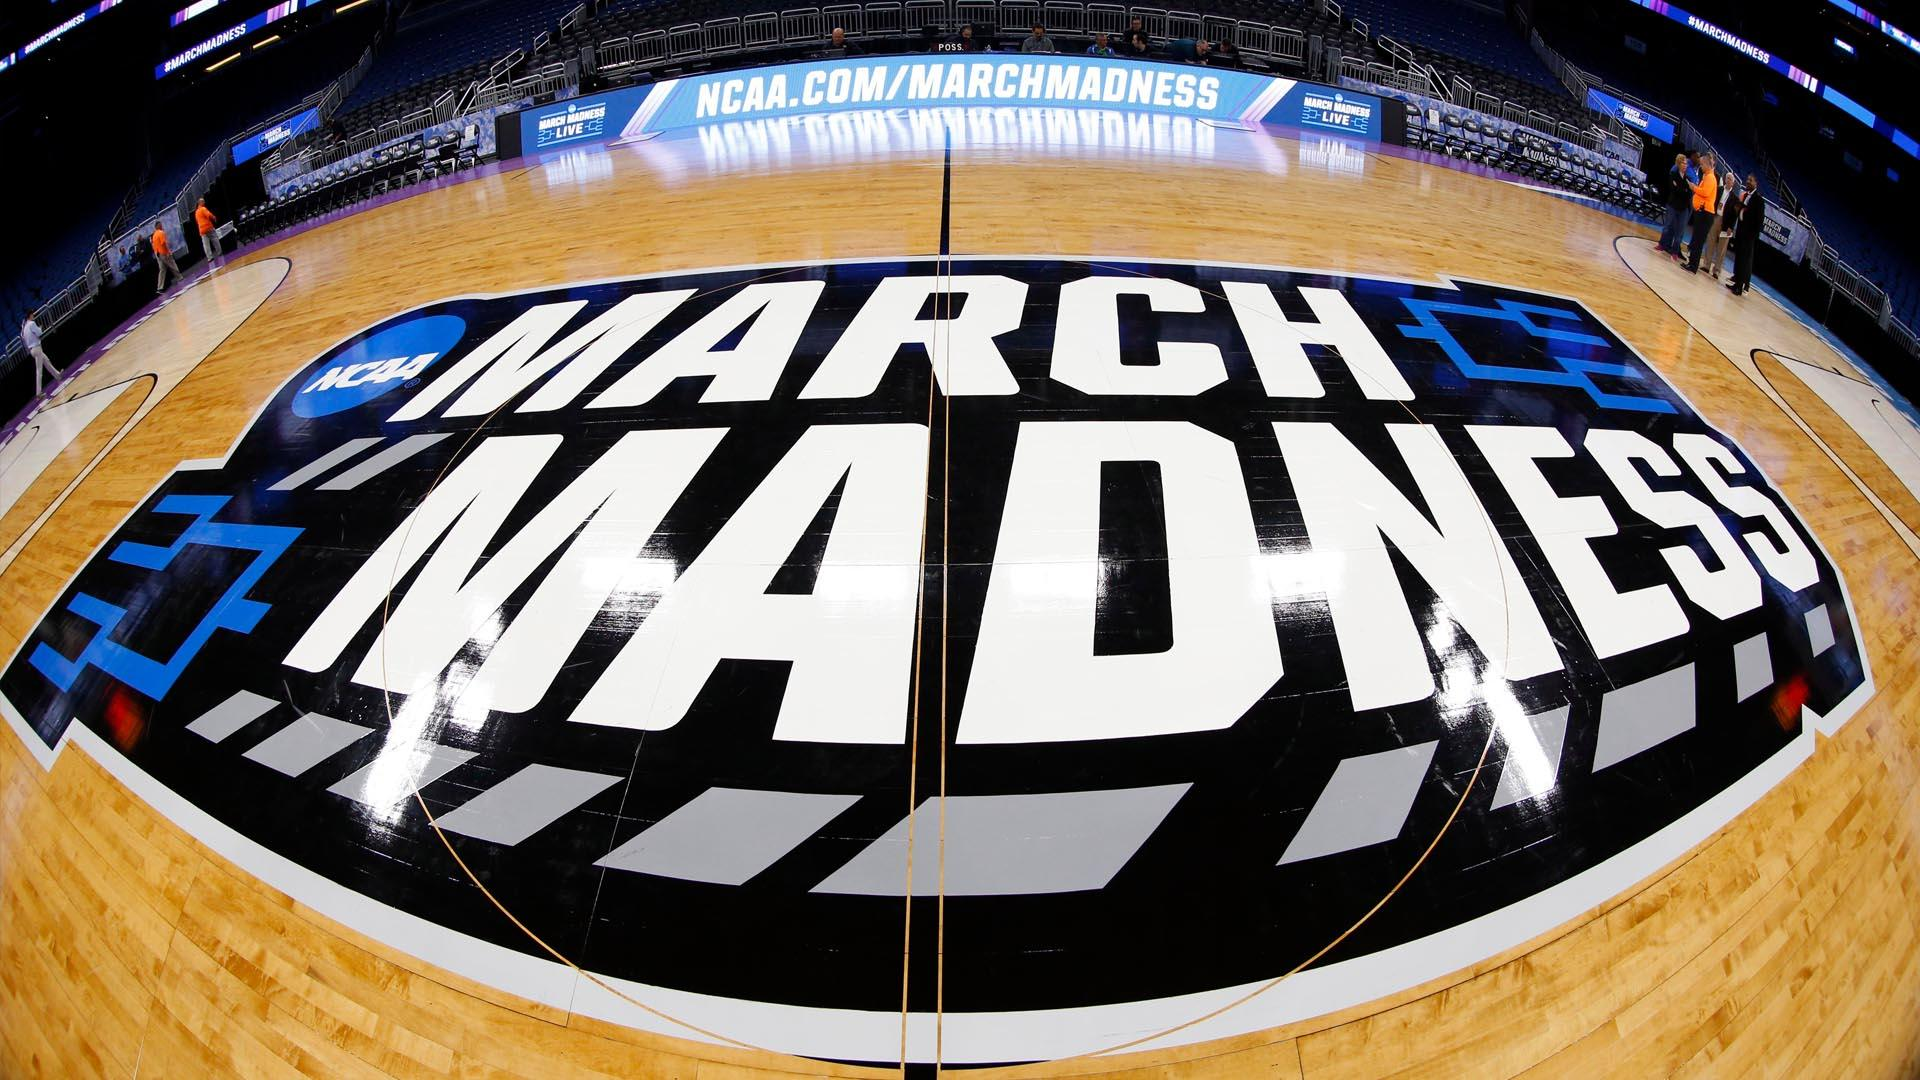 march madness - photo #5